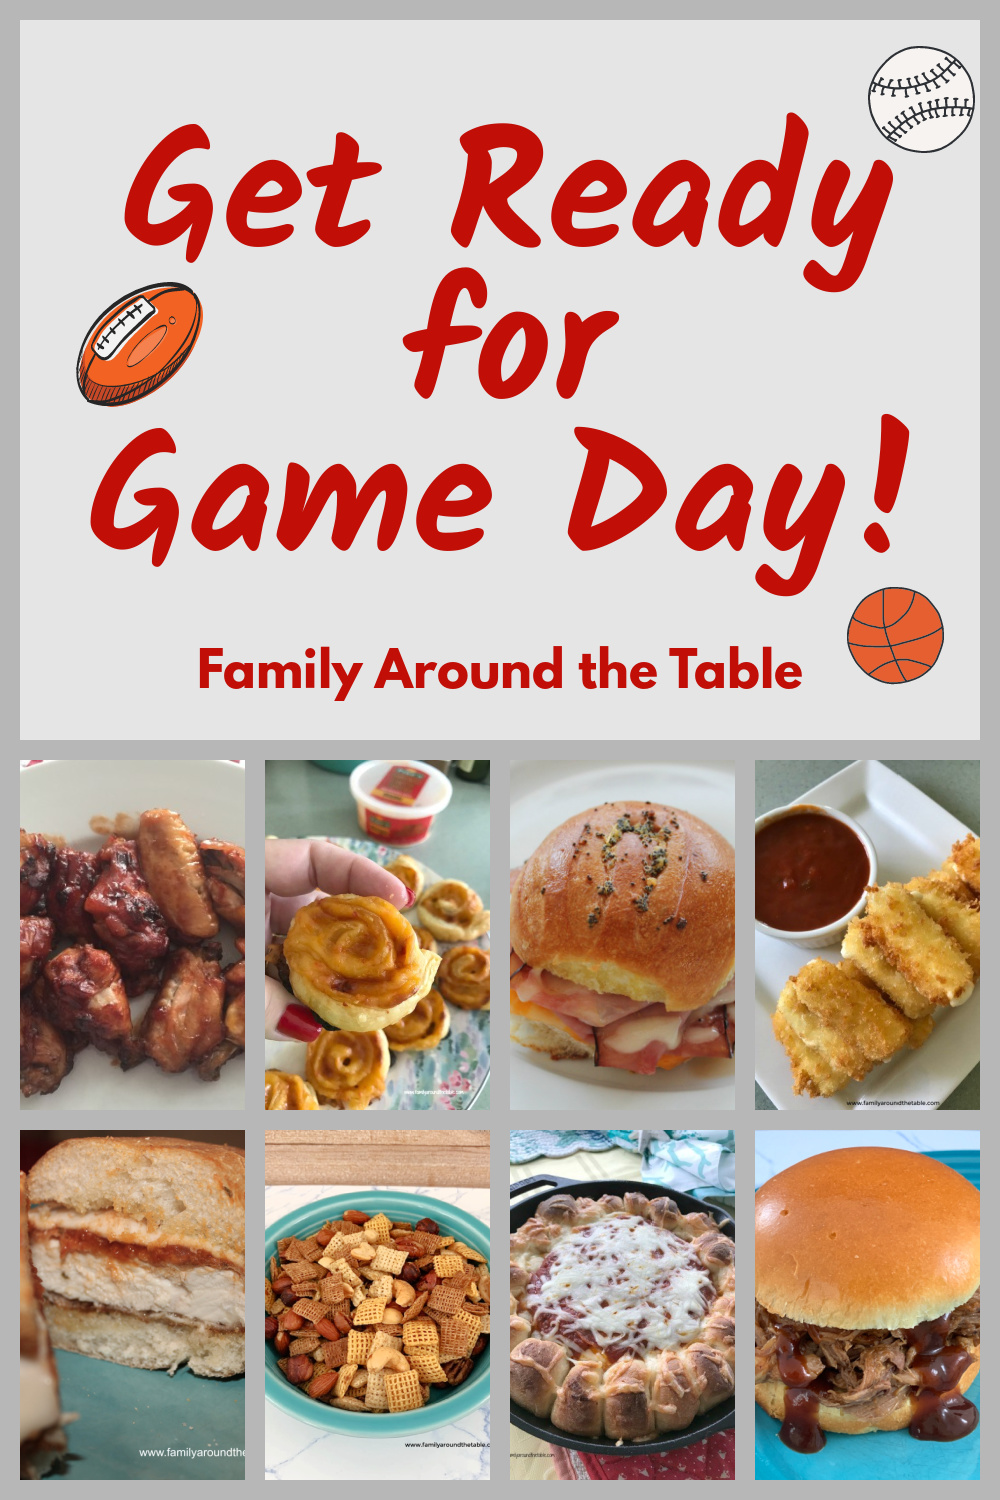 Game day recipes Pinterest image.